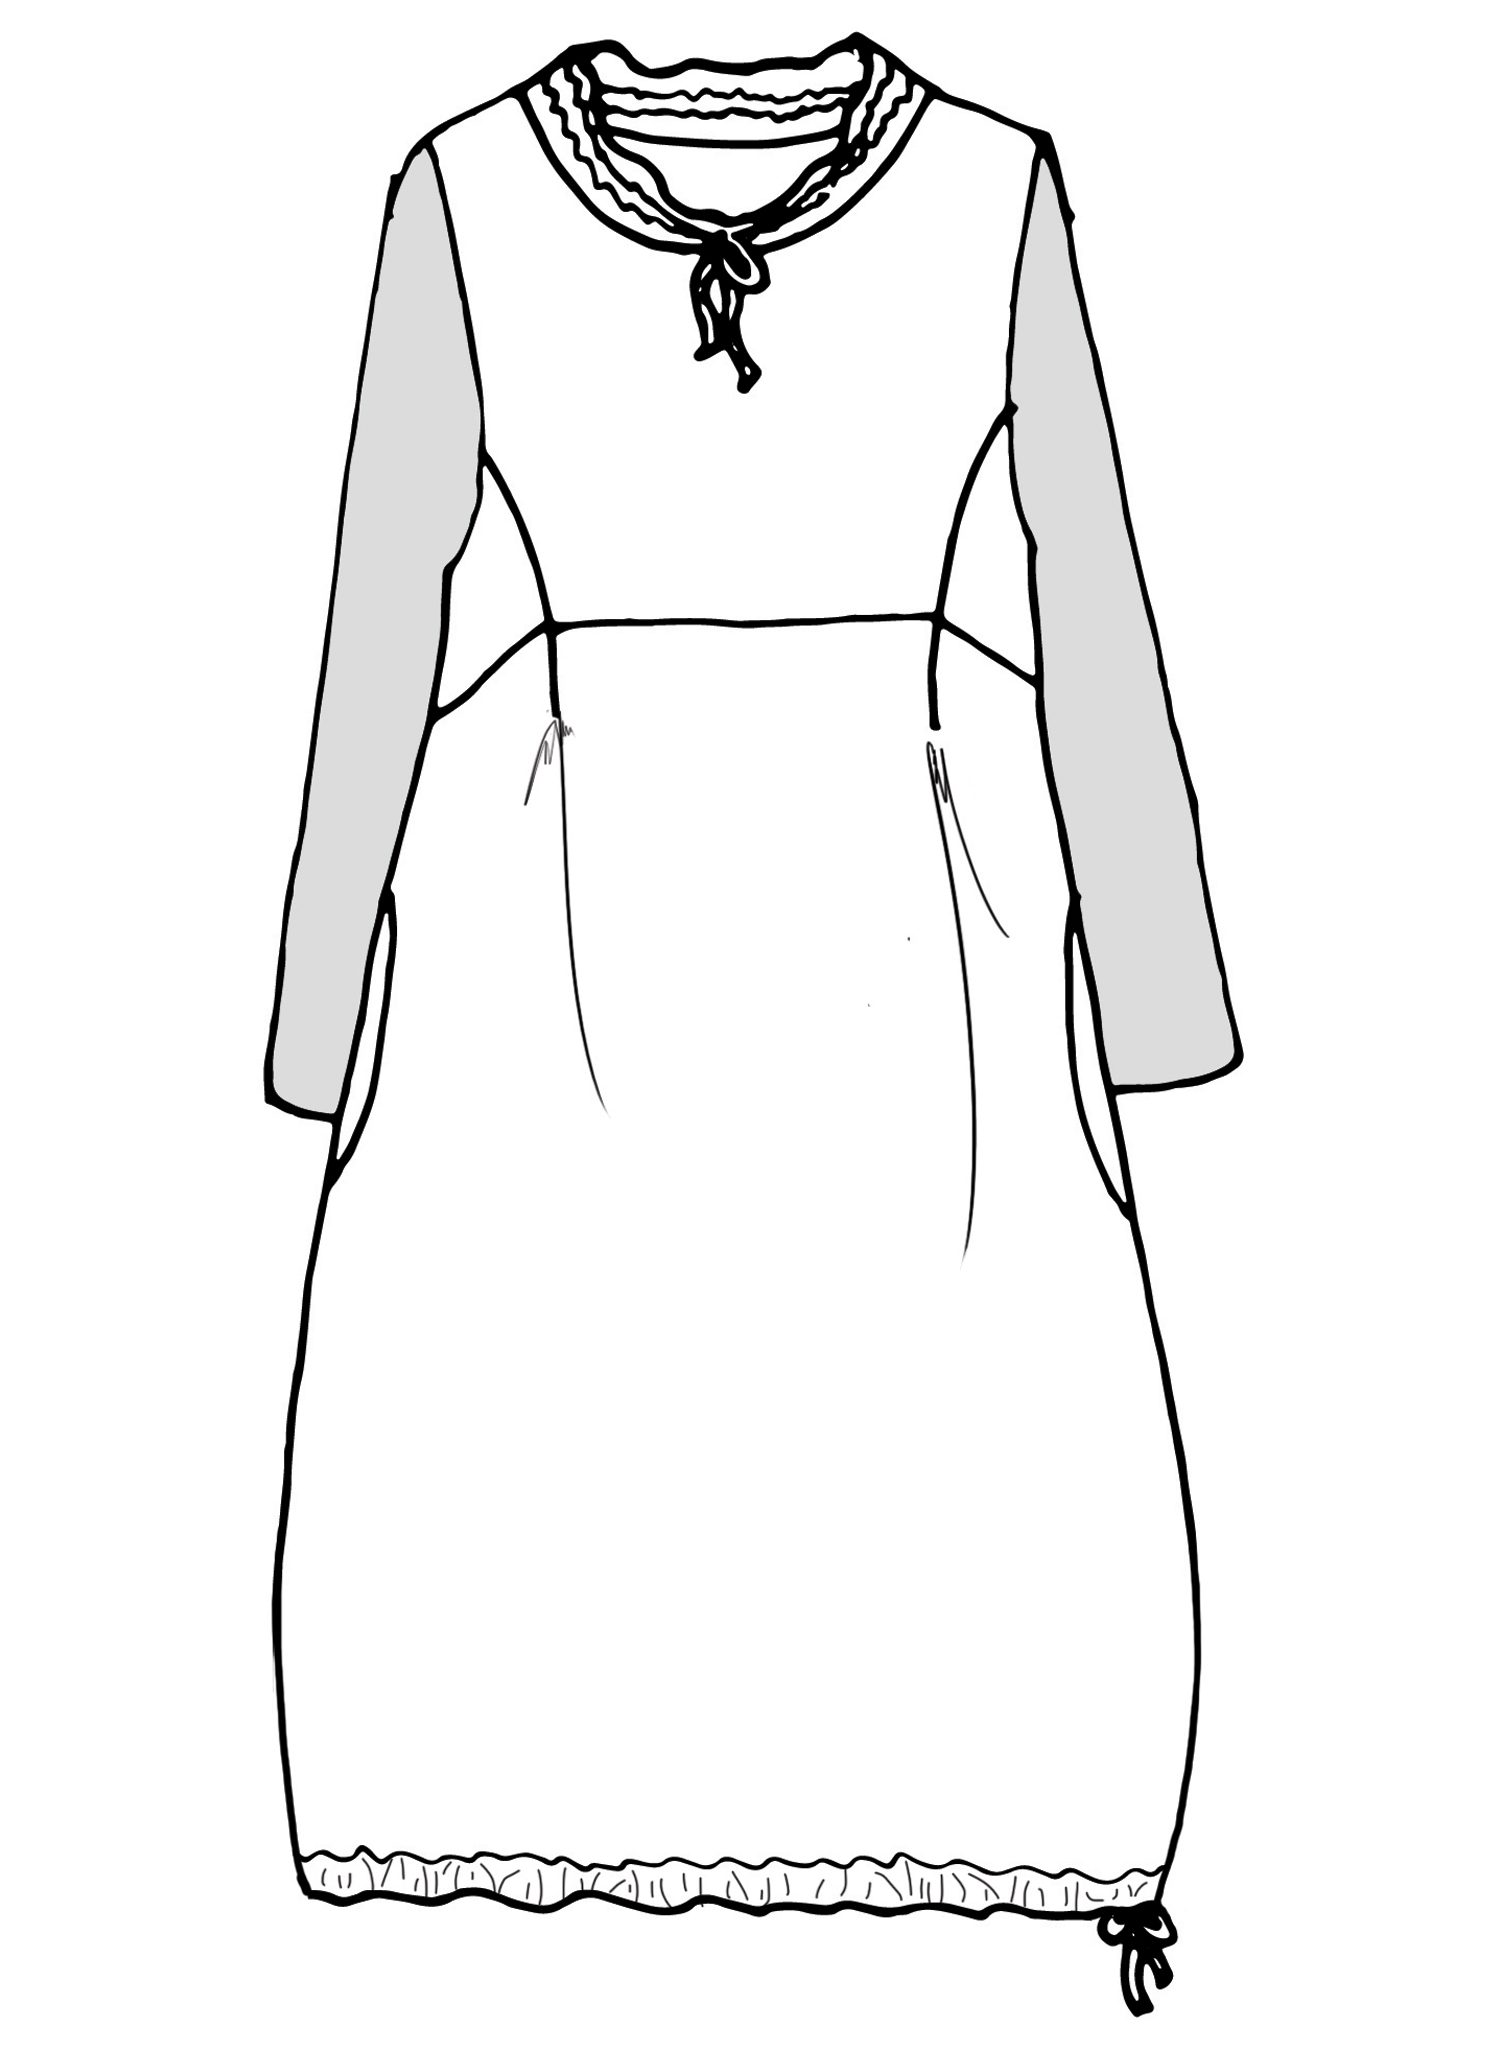 Revere Dress sketch image